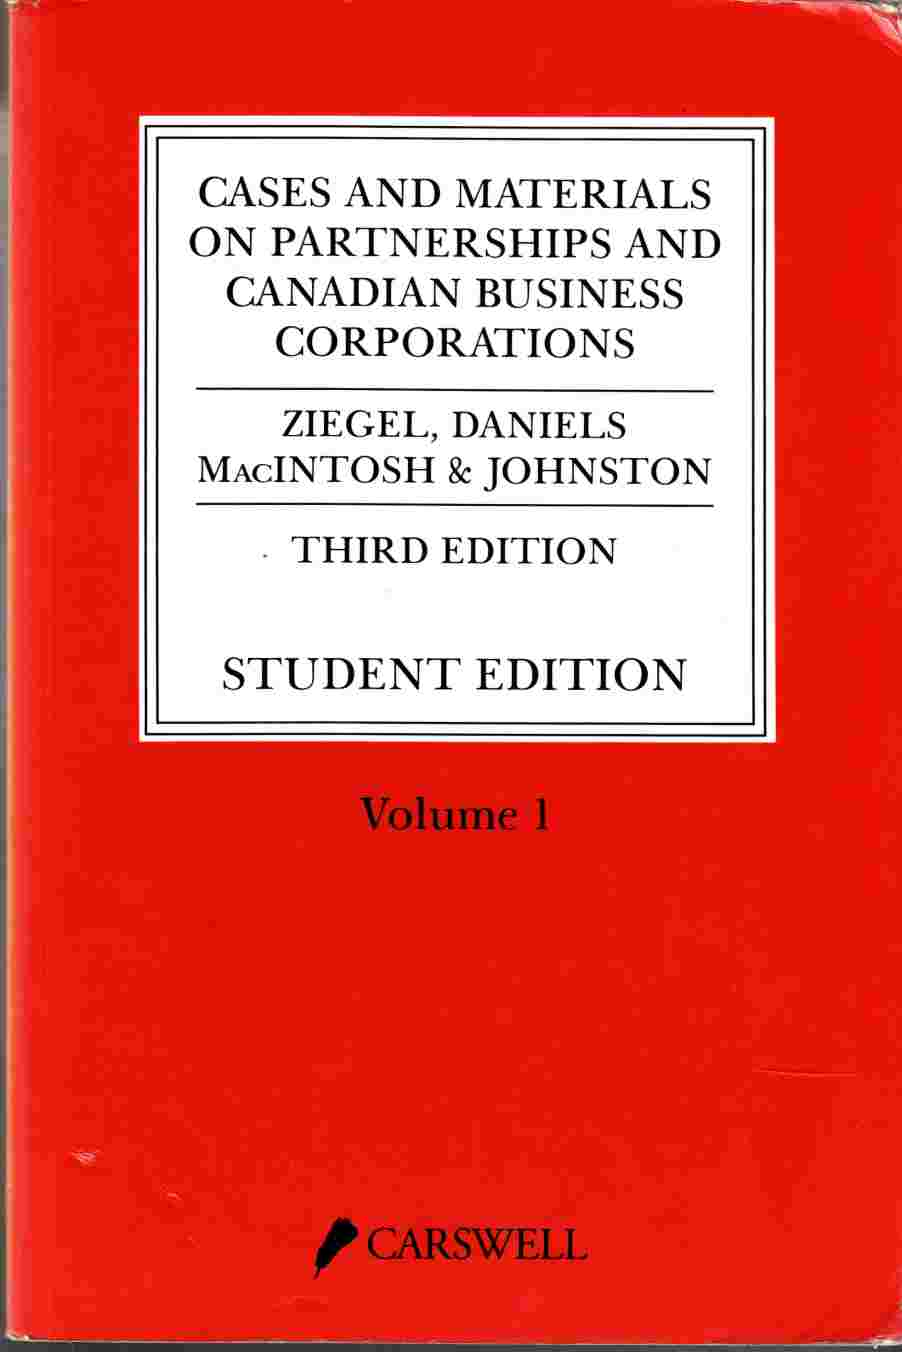 Image for Cases and Materials on Partnerships and Canadian Business Corporations (2 Volumes)  Third Edition Student Edition